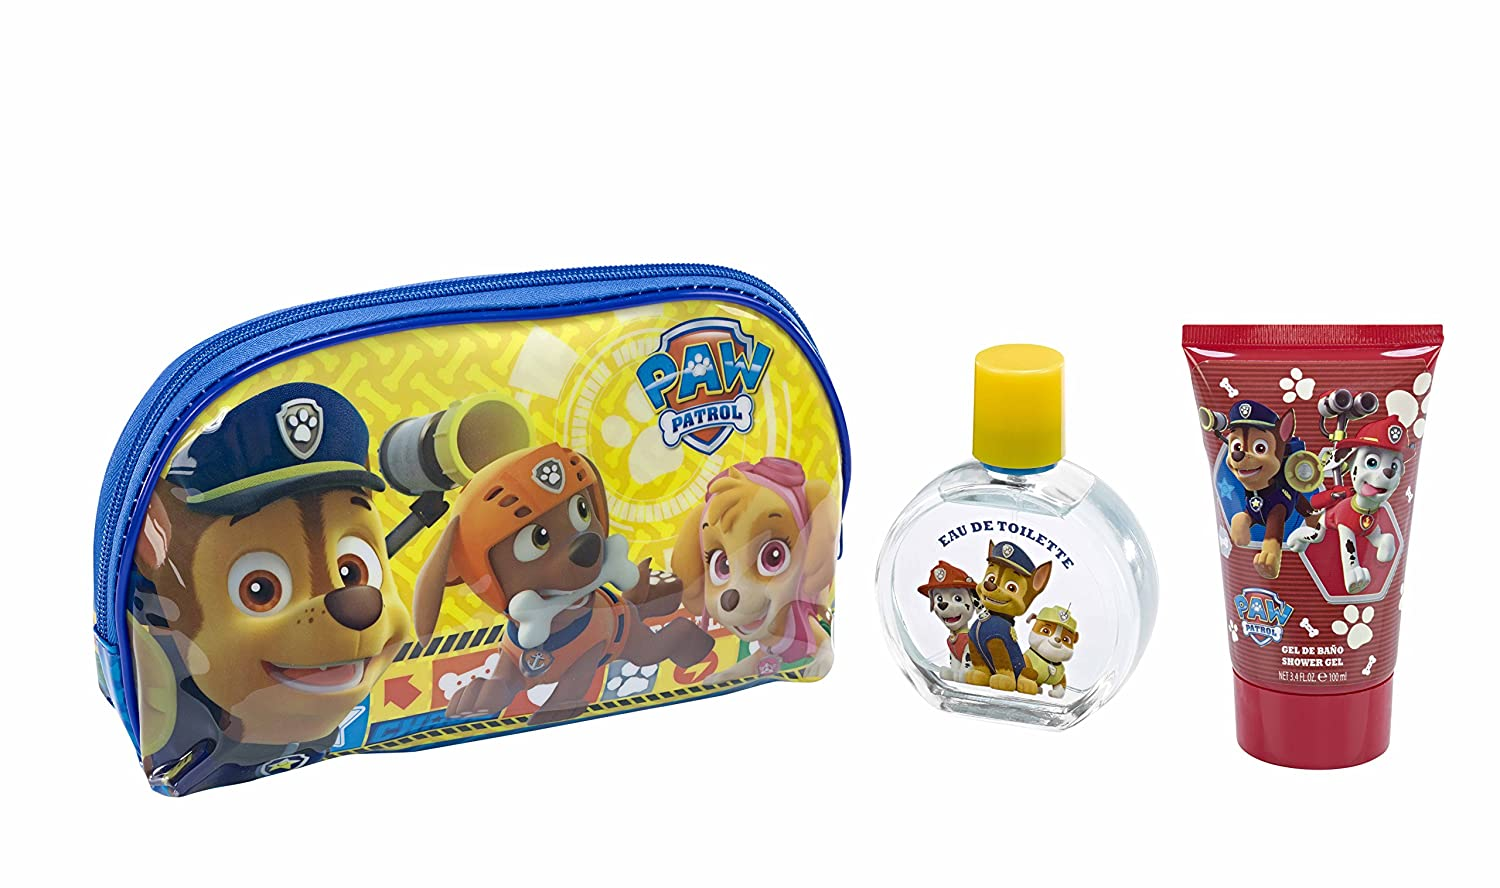 Paw Patrol Neceser Perfume y Gel - 1 pack Air Val International 6015